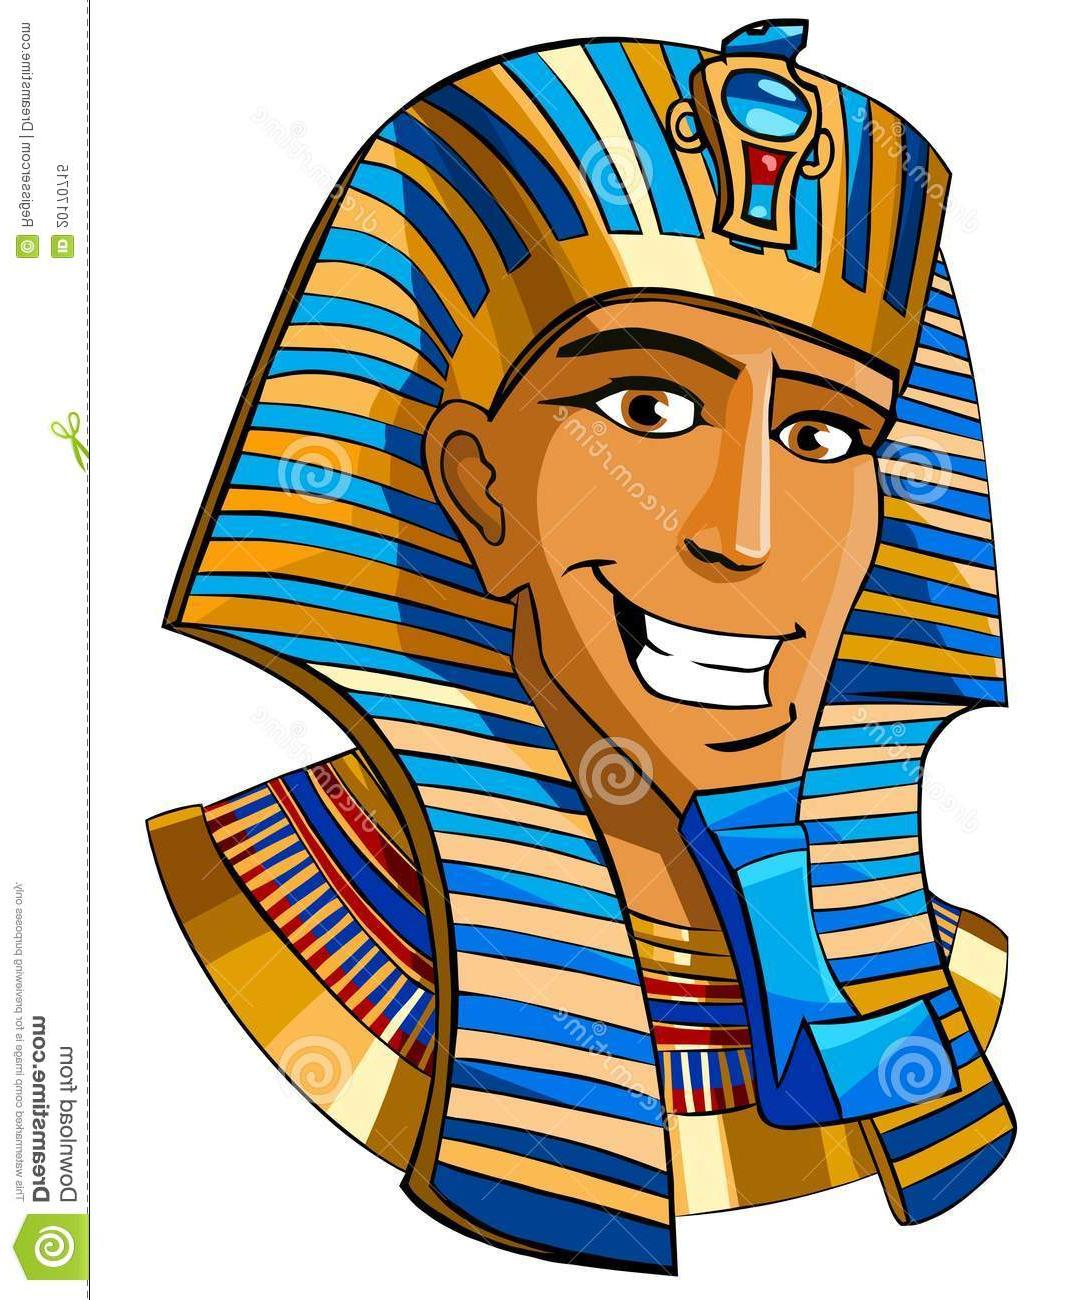 Kingtut clipart picture black and white stock king tut clipart – 2.000.000 Cool Cliparts, Stock Vector And Royalty ... picture black and white stock